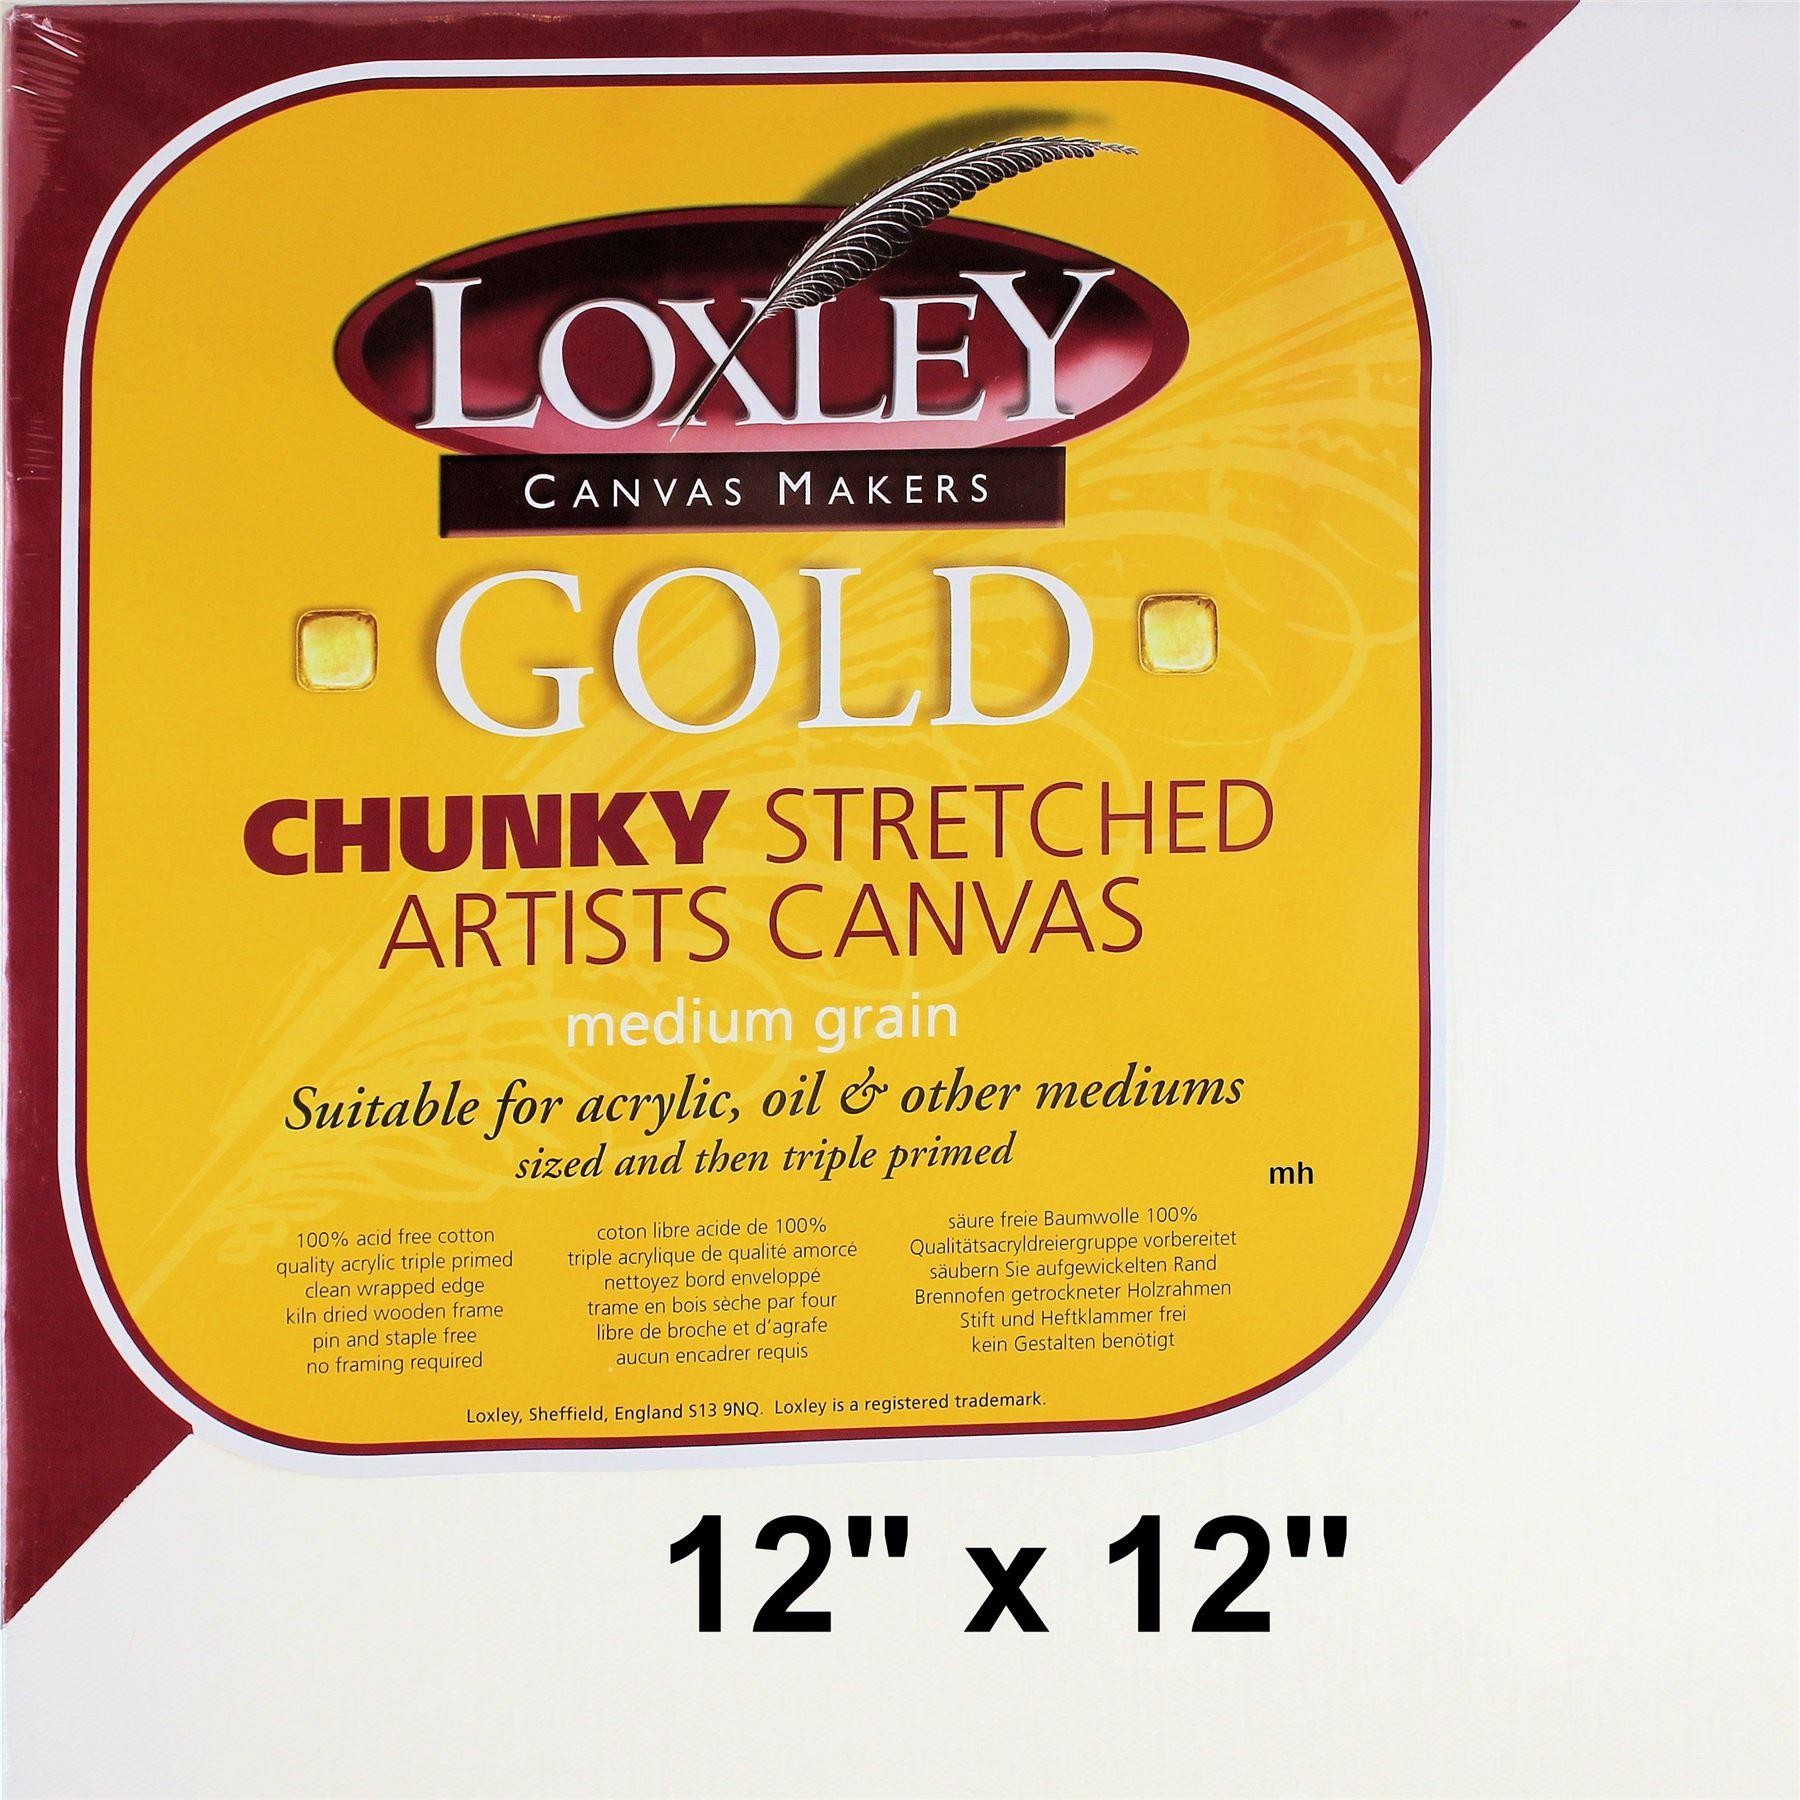 Loxley Gold Stretched Canvas Chunky Deep edge, cotton canvas Primed